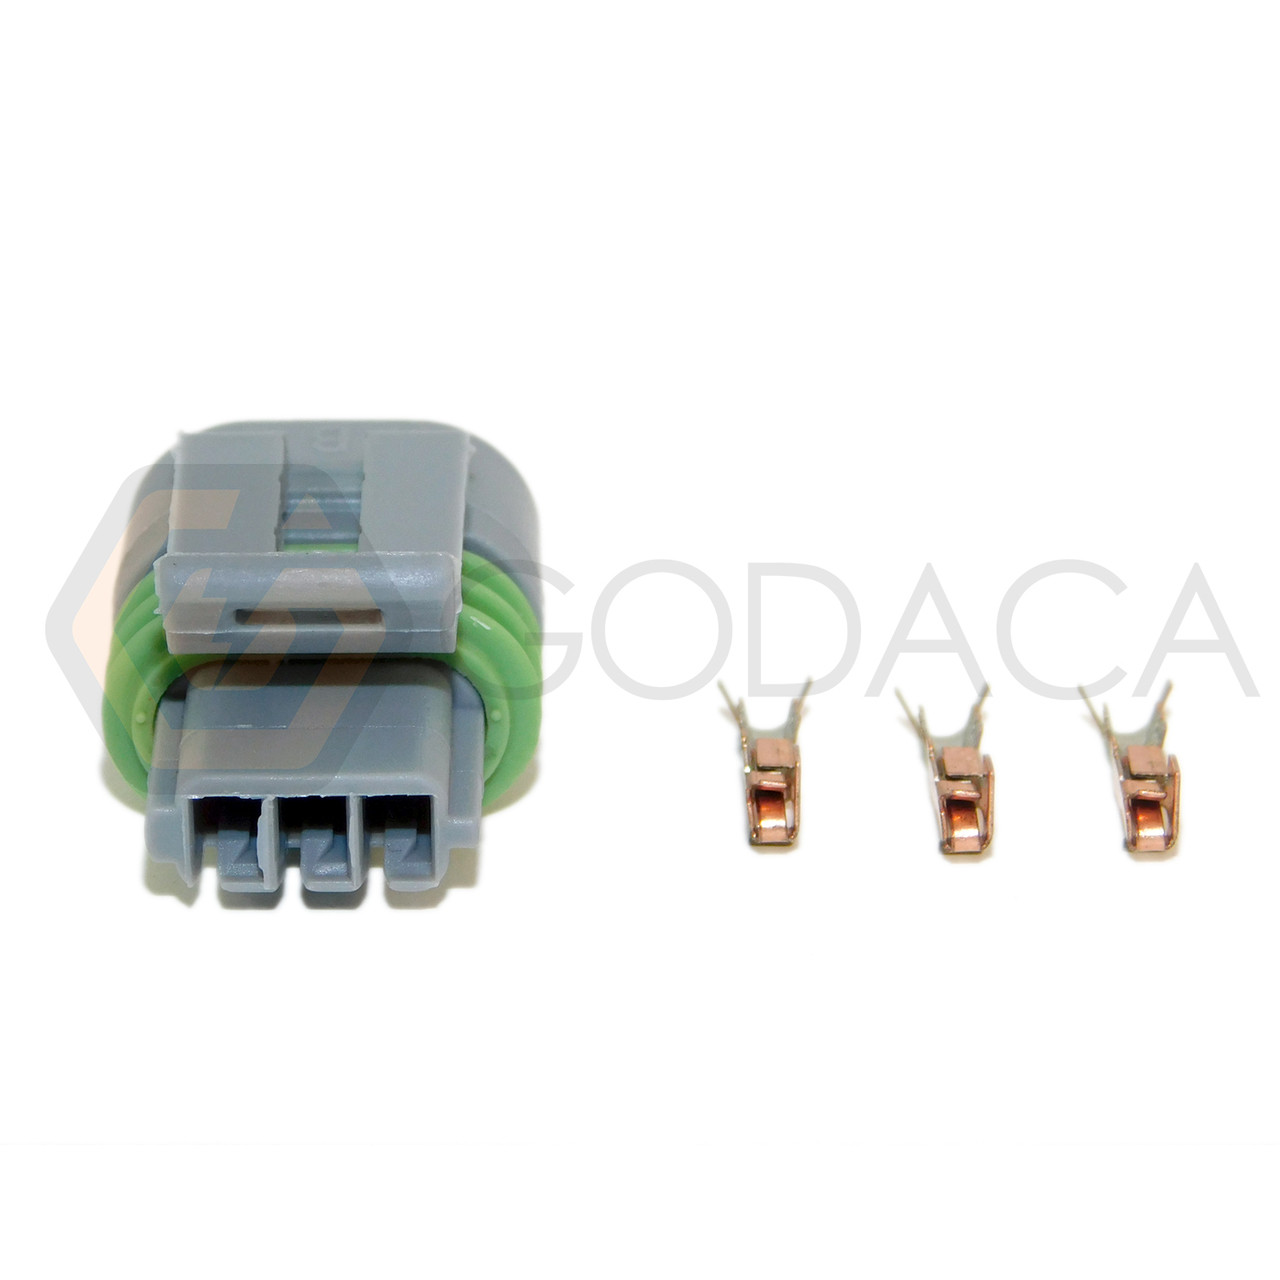 hight resolution of 1x connector 3 way for gm camshaft position sensor cps pt148 w out wire godaca llc